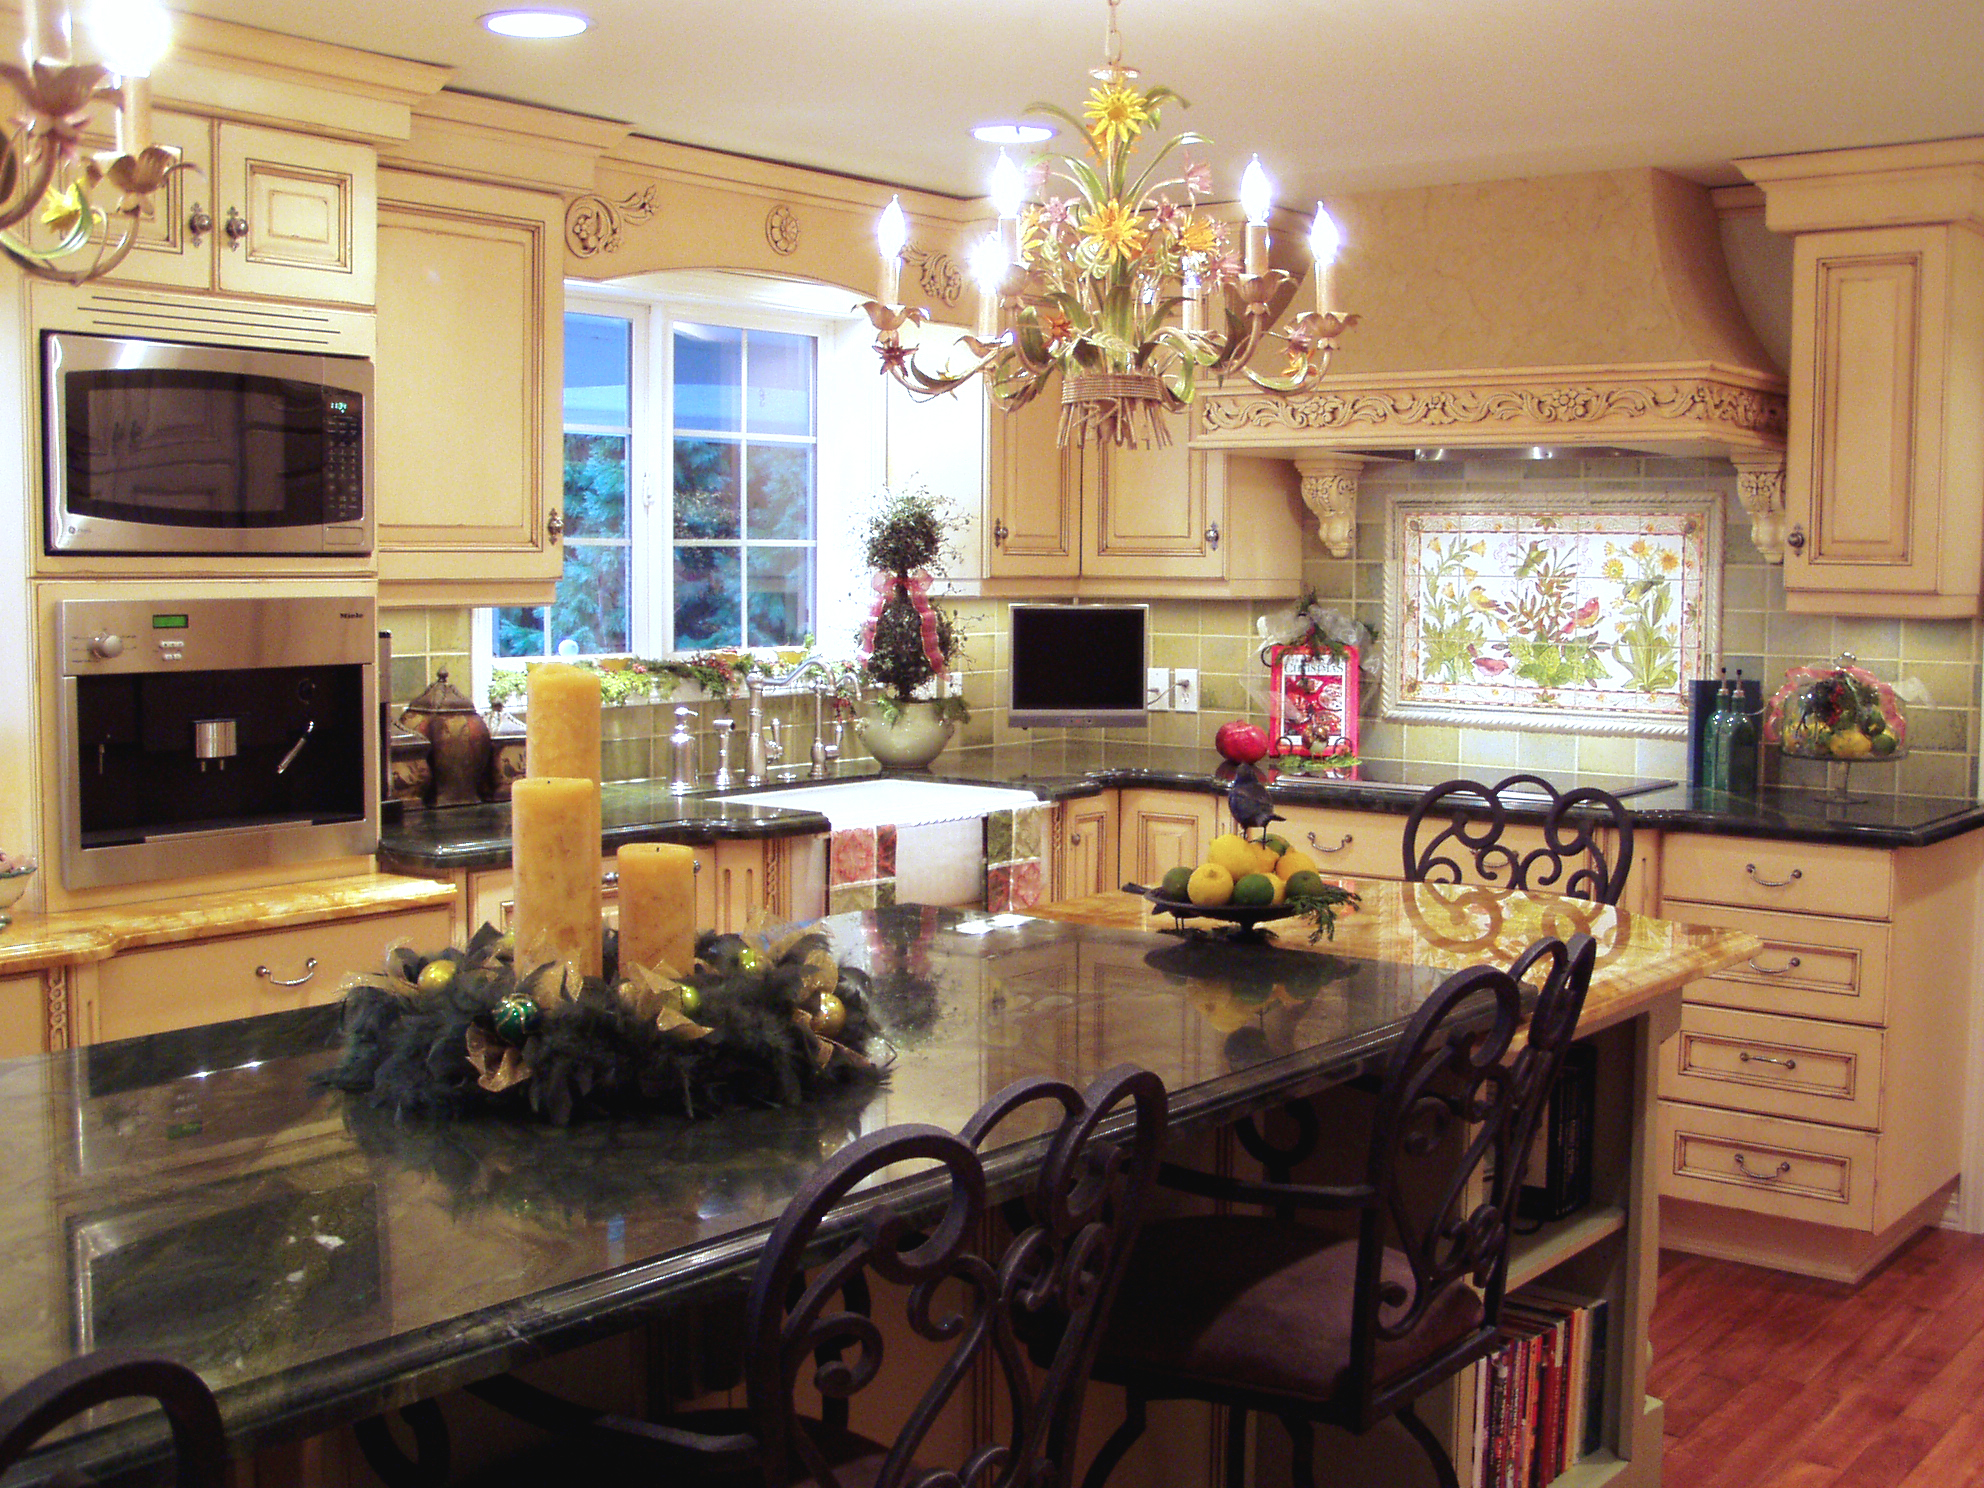 View towards sink, on the left side of the image is the espresso machine